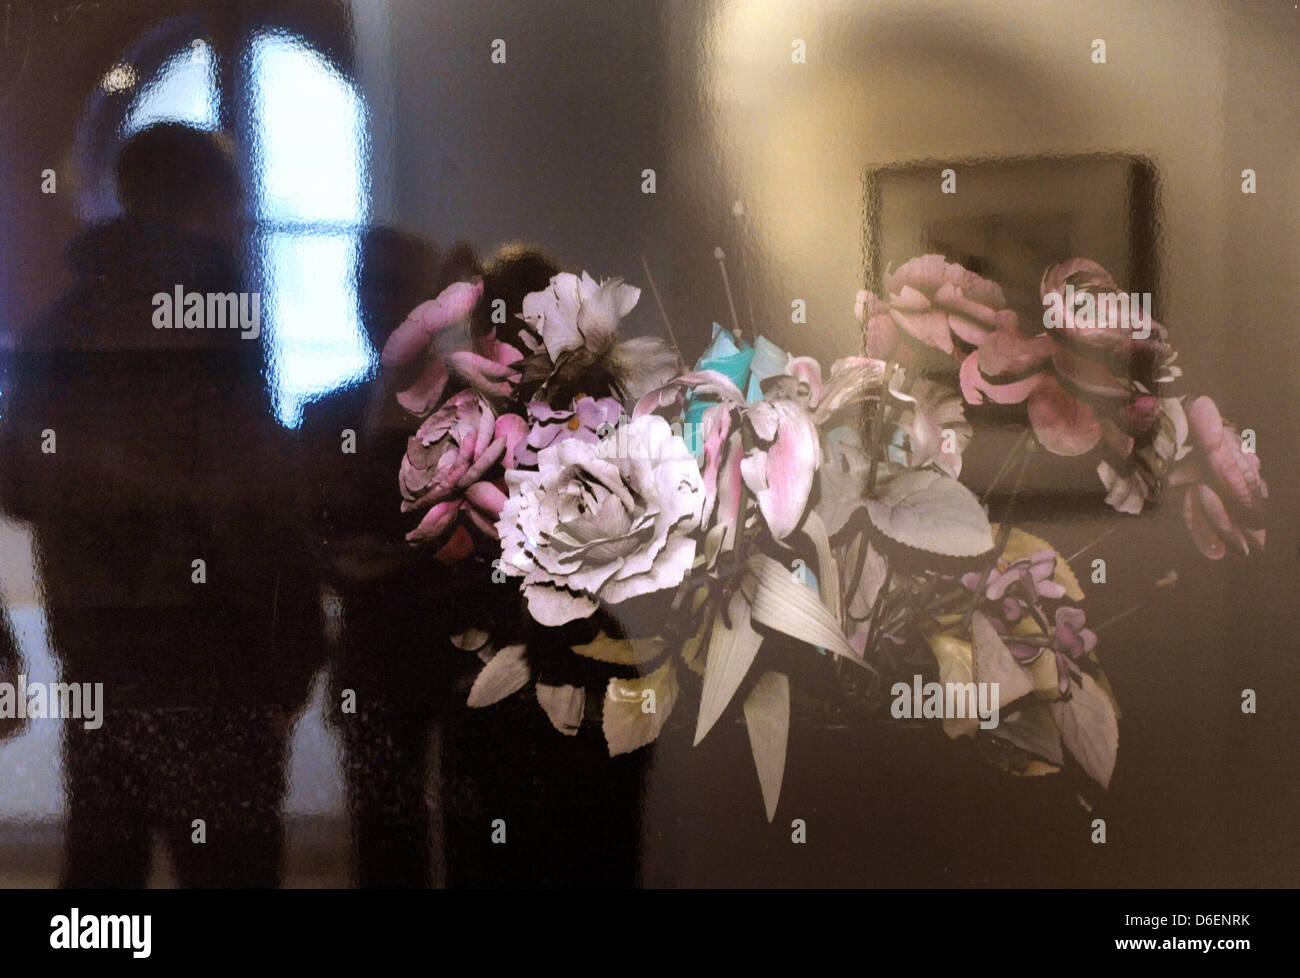 A young man looks at the pictrue 'Fleur du Mal' by Moritz Wehrmann at the Neues Museum in Weimar, Germany, - Stock Image